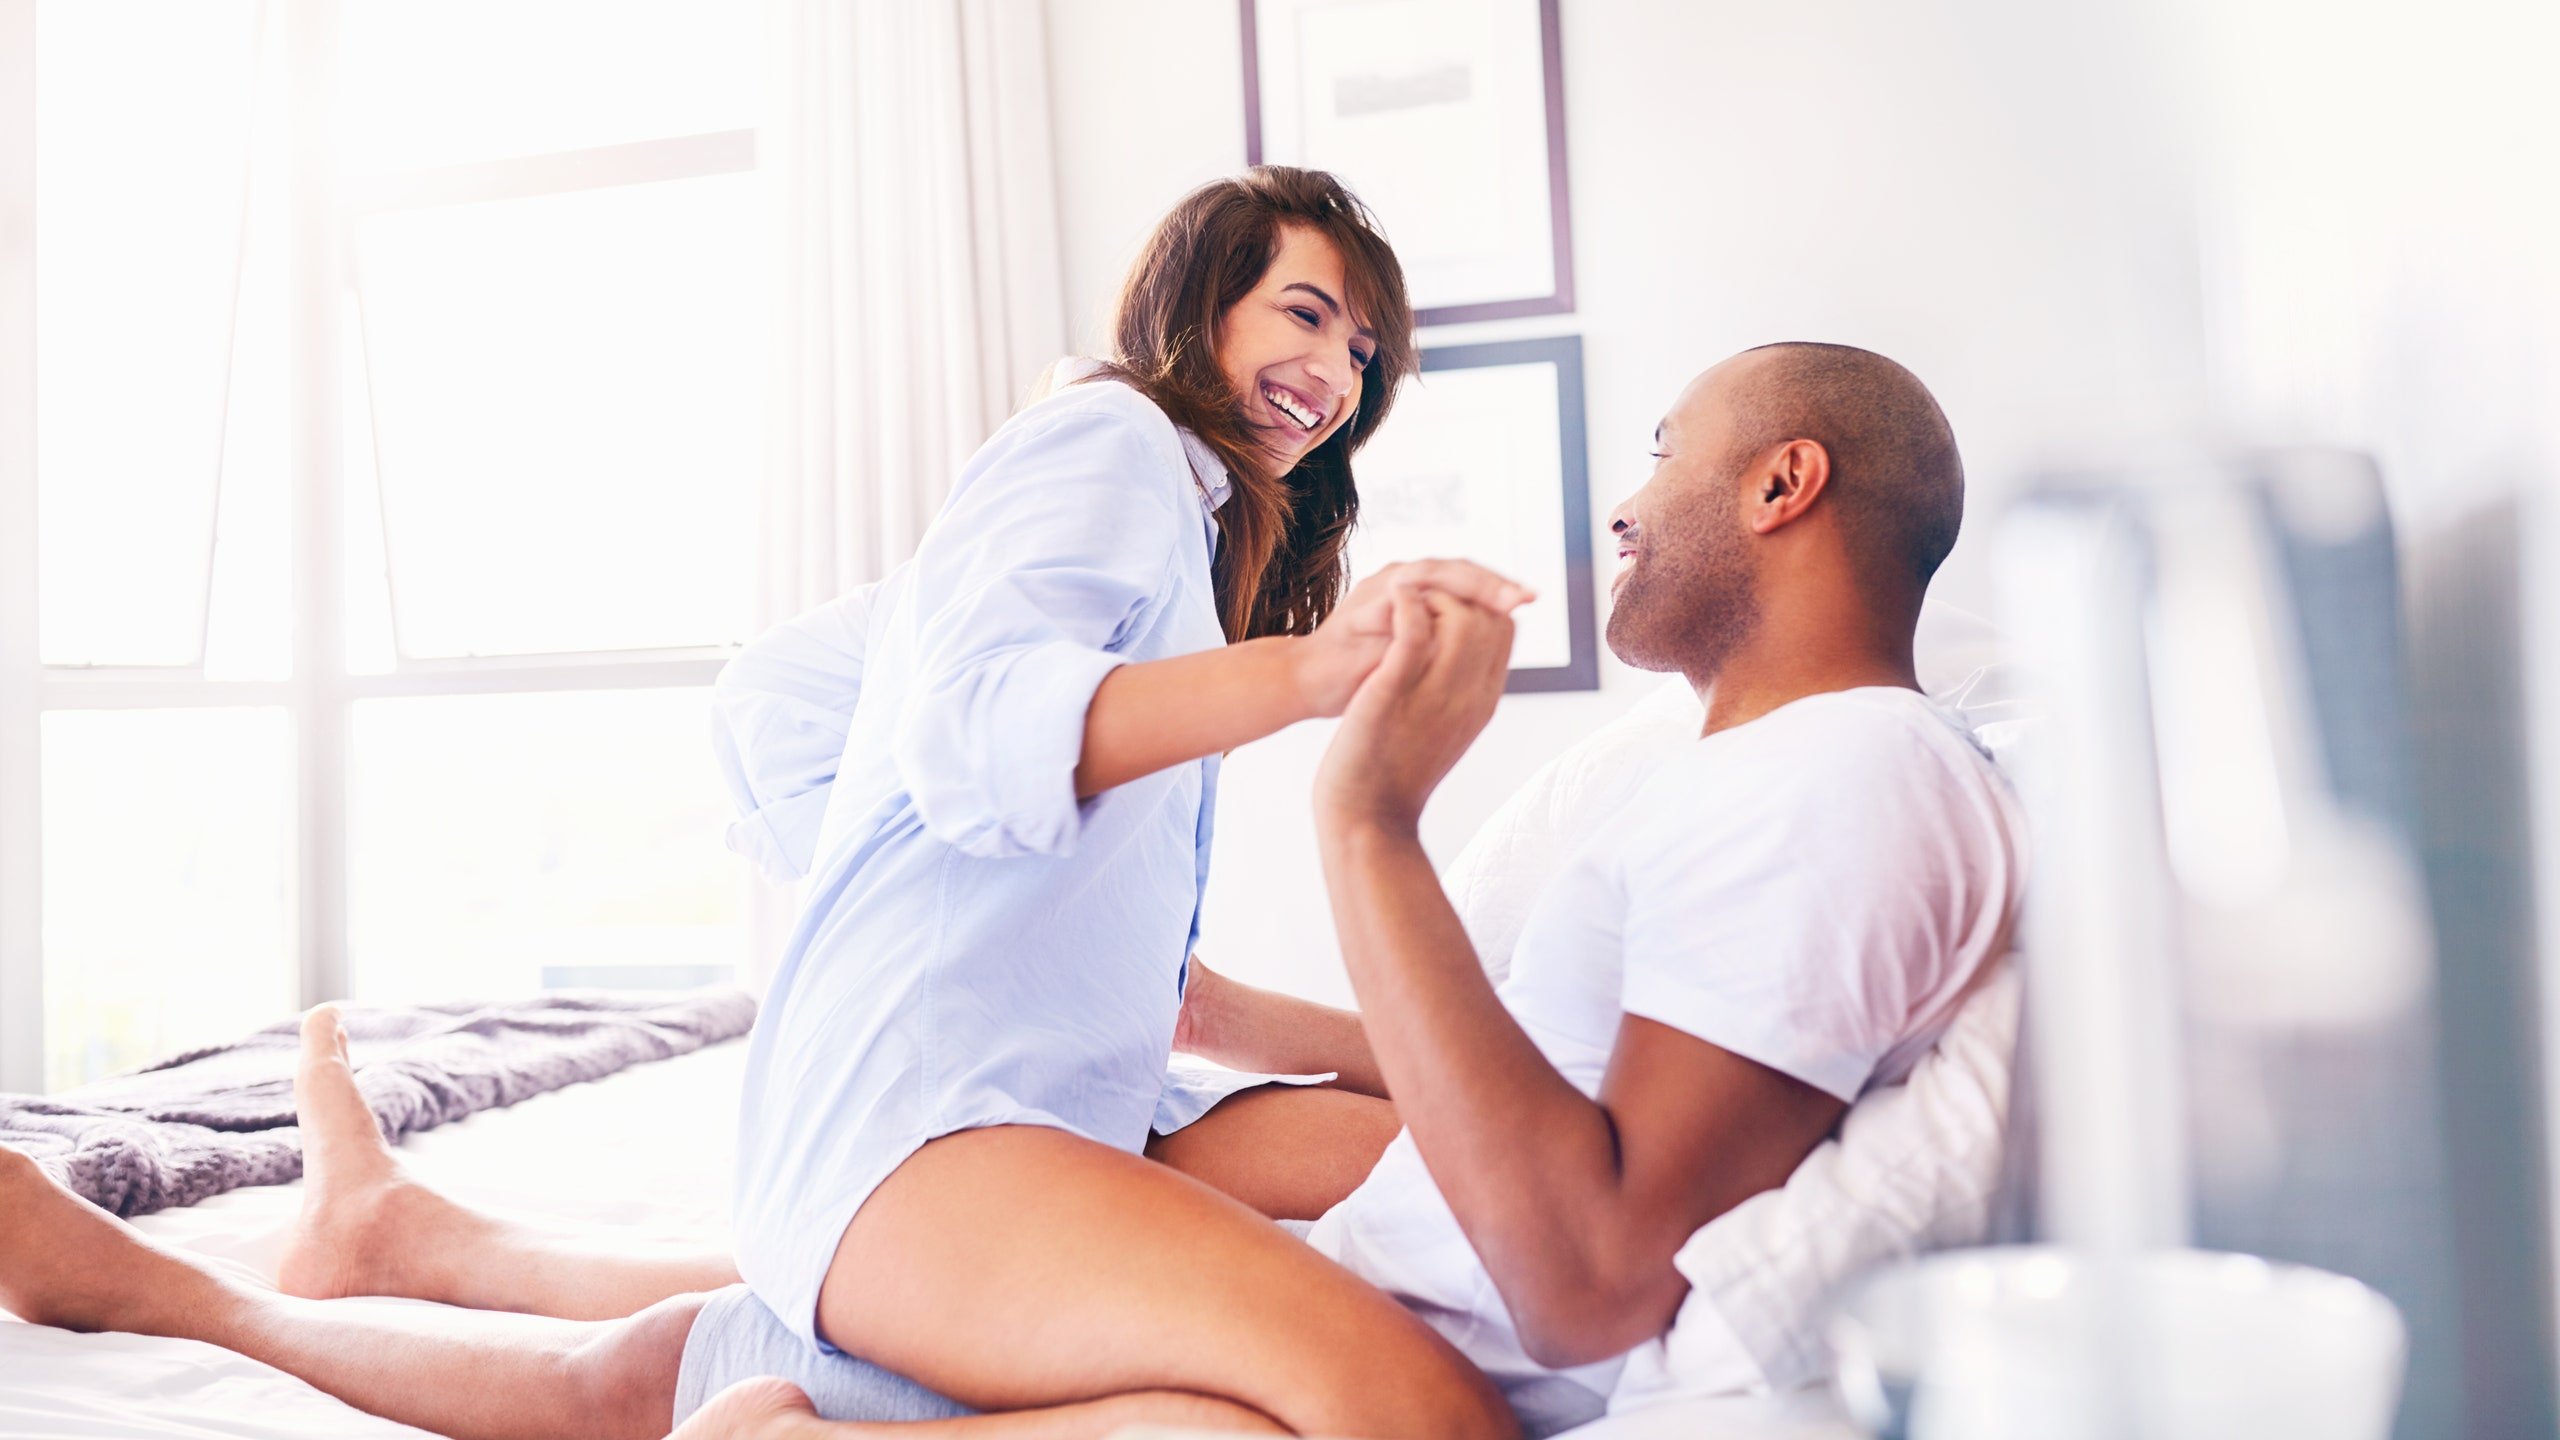 Sex nude boy sits on girl